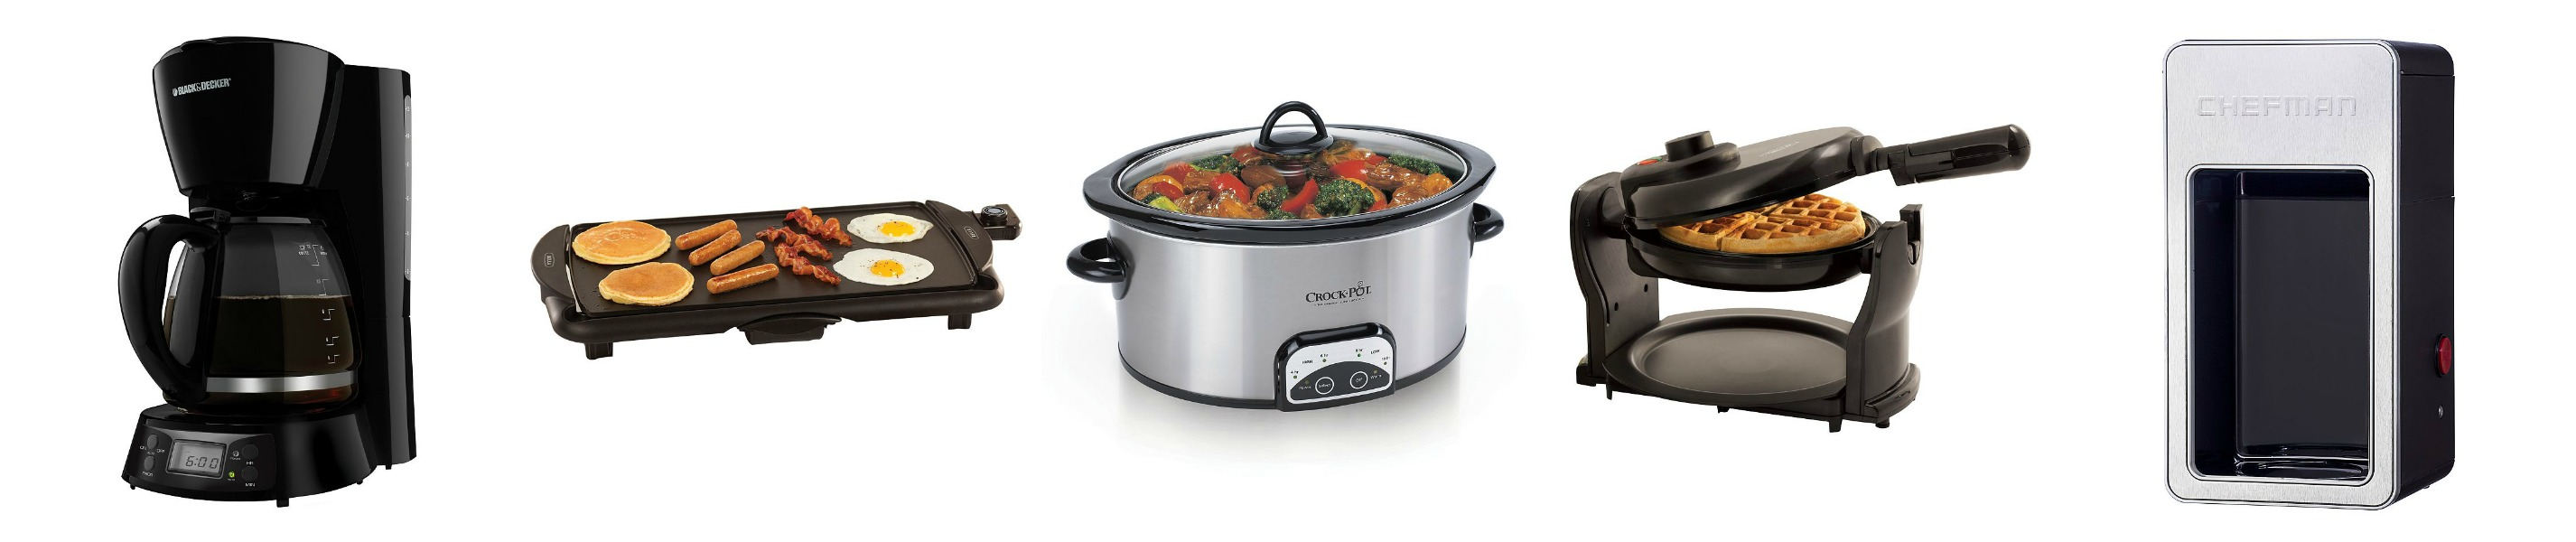 FREE Small Kitchen Appliances After Coupon Code, Kohl's Cash & Rebate